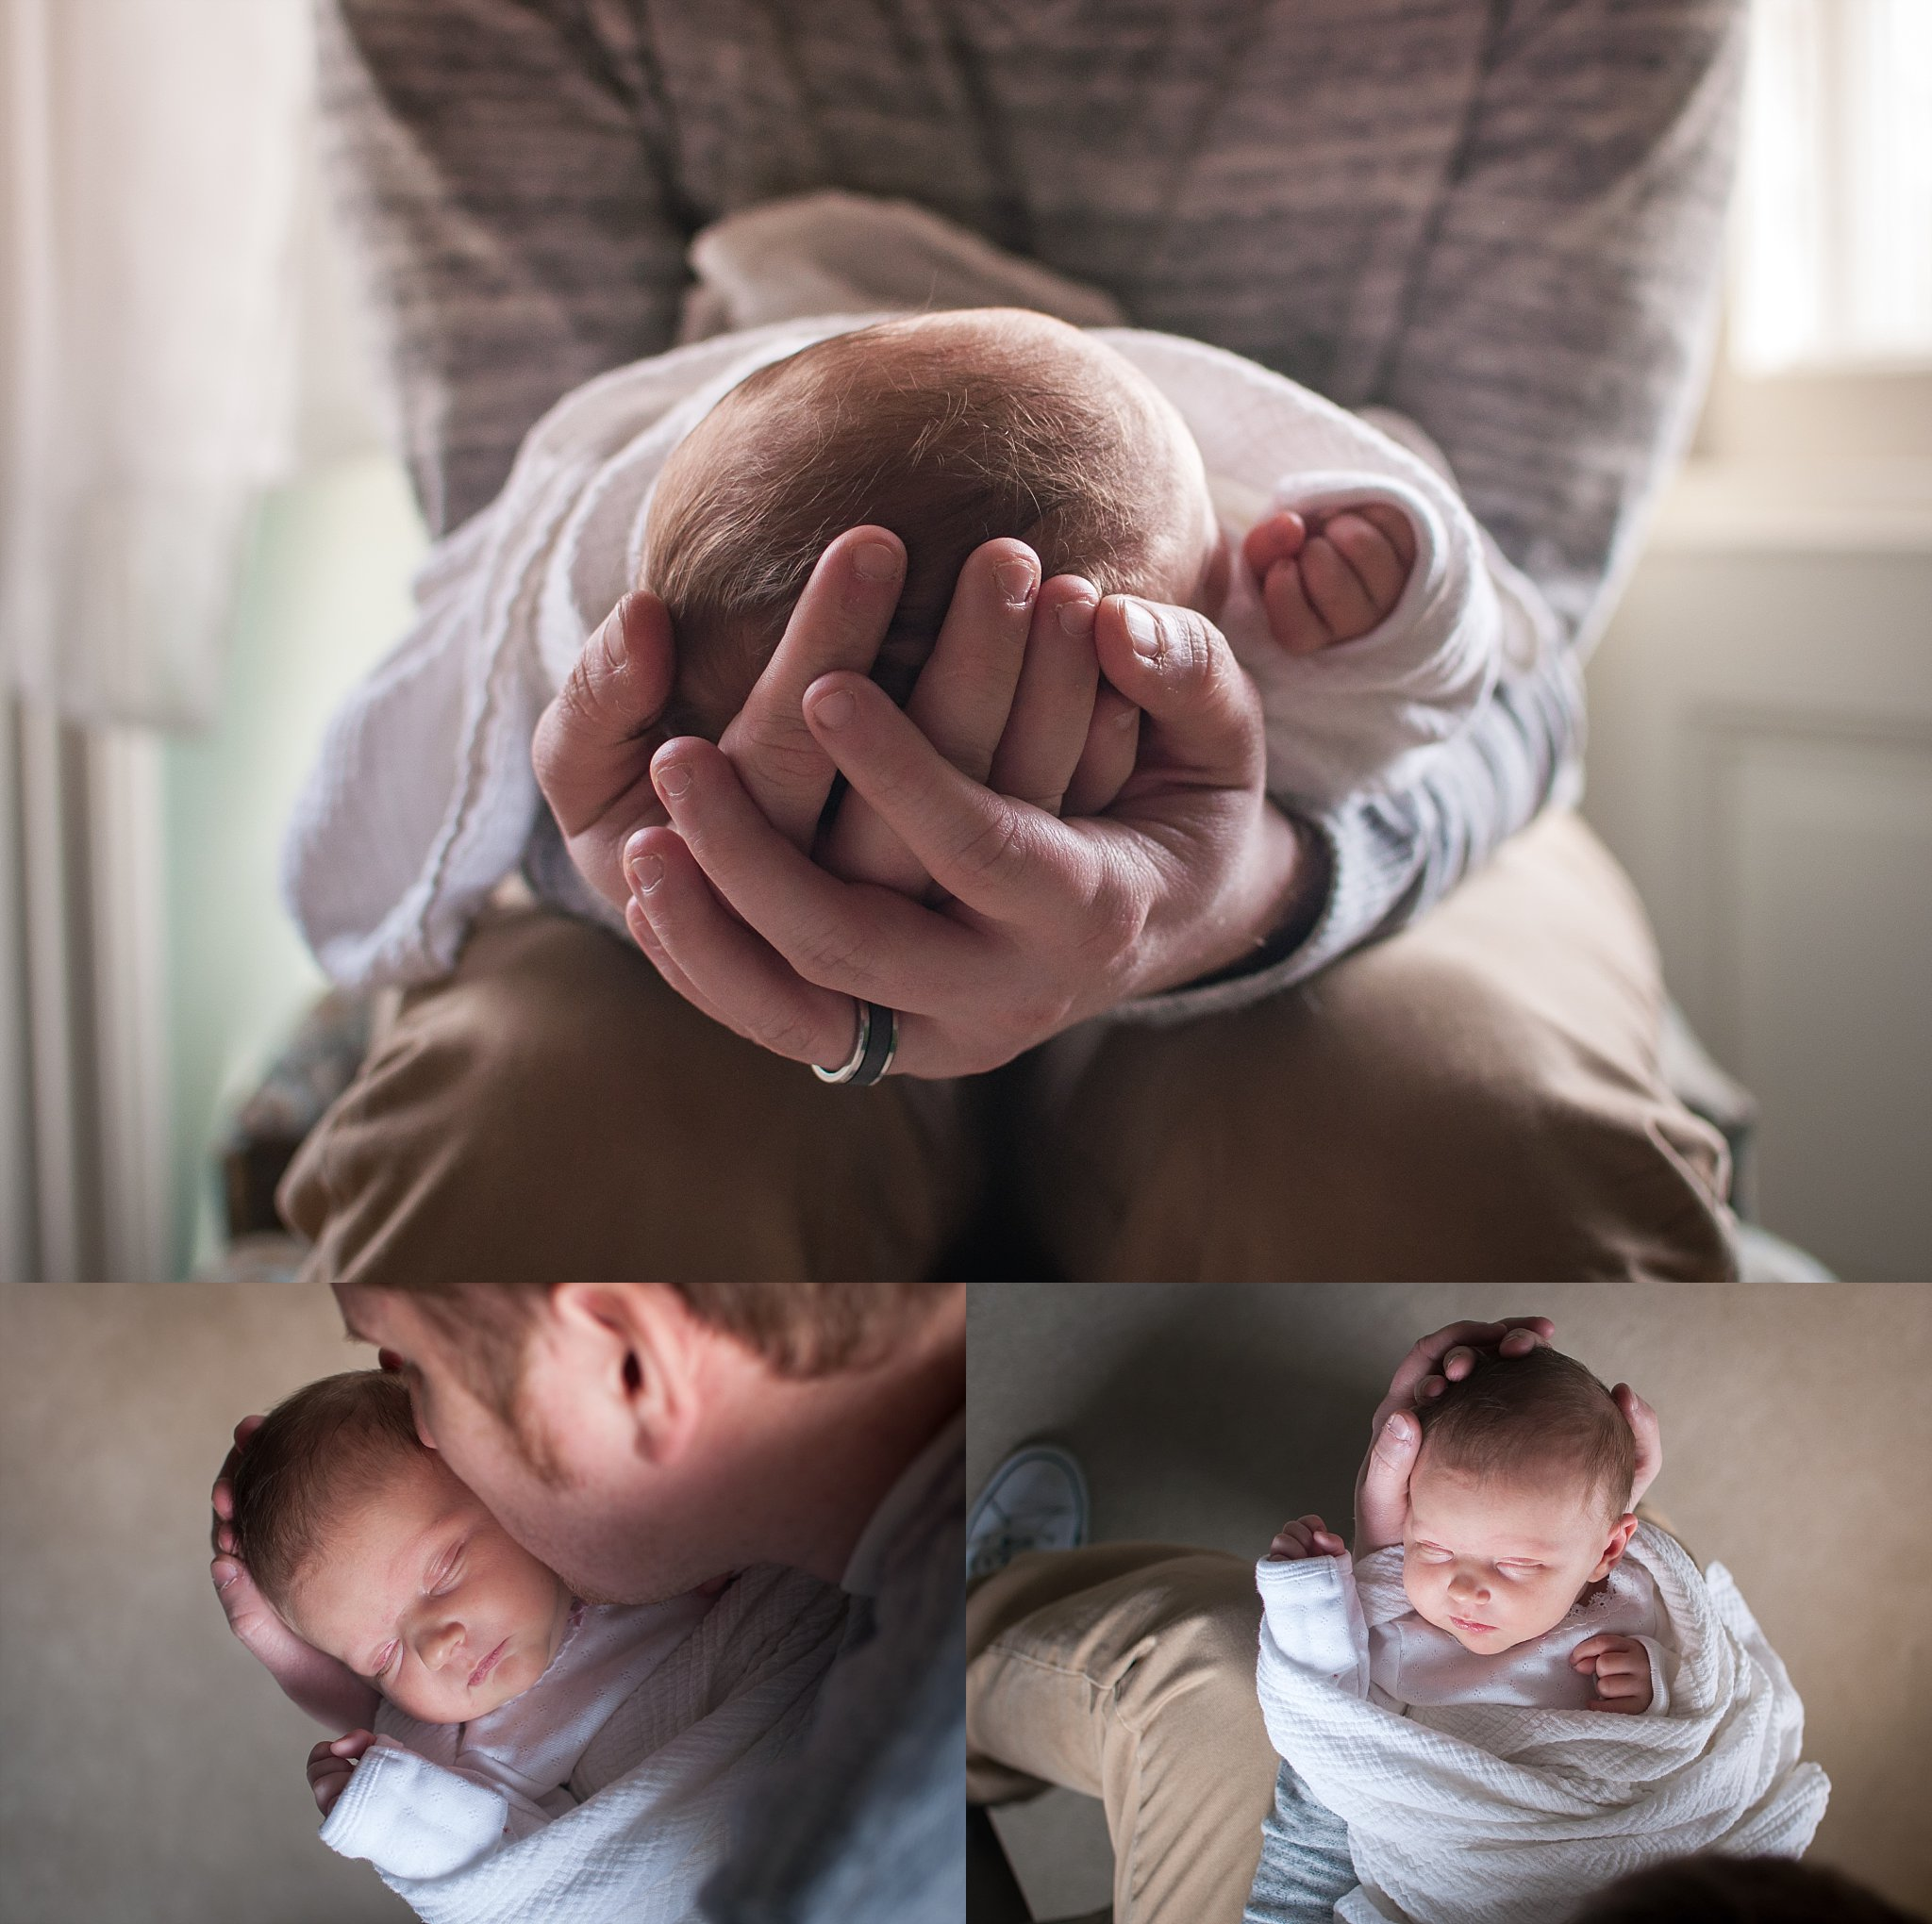 Peoria dad holds newborn baby girl during photography session at The Mansion on Walnut in Pekin, IL.